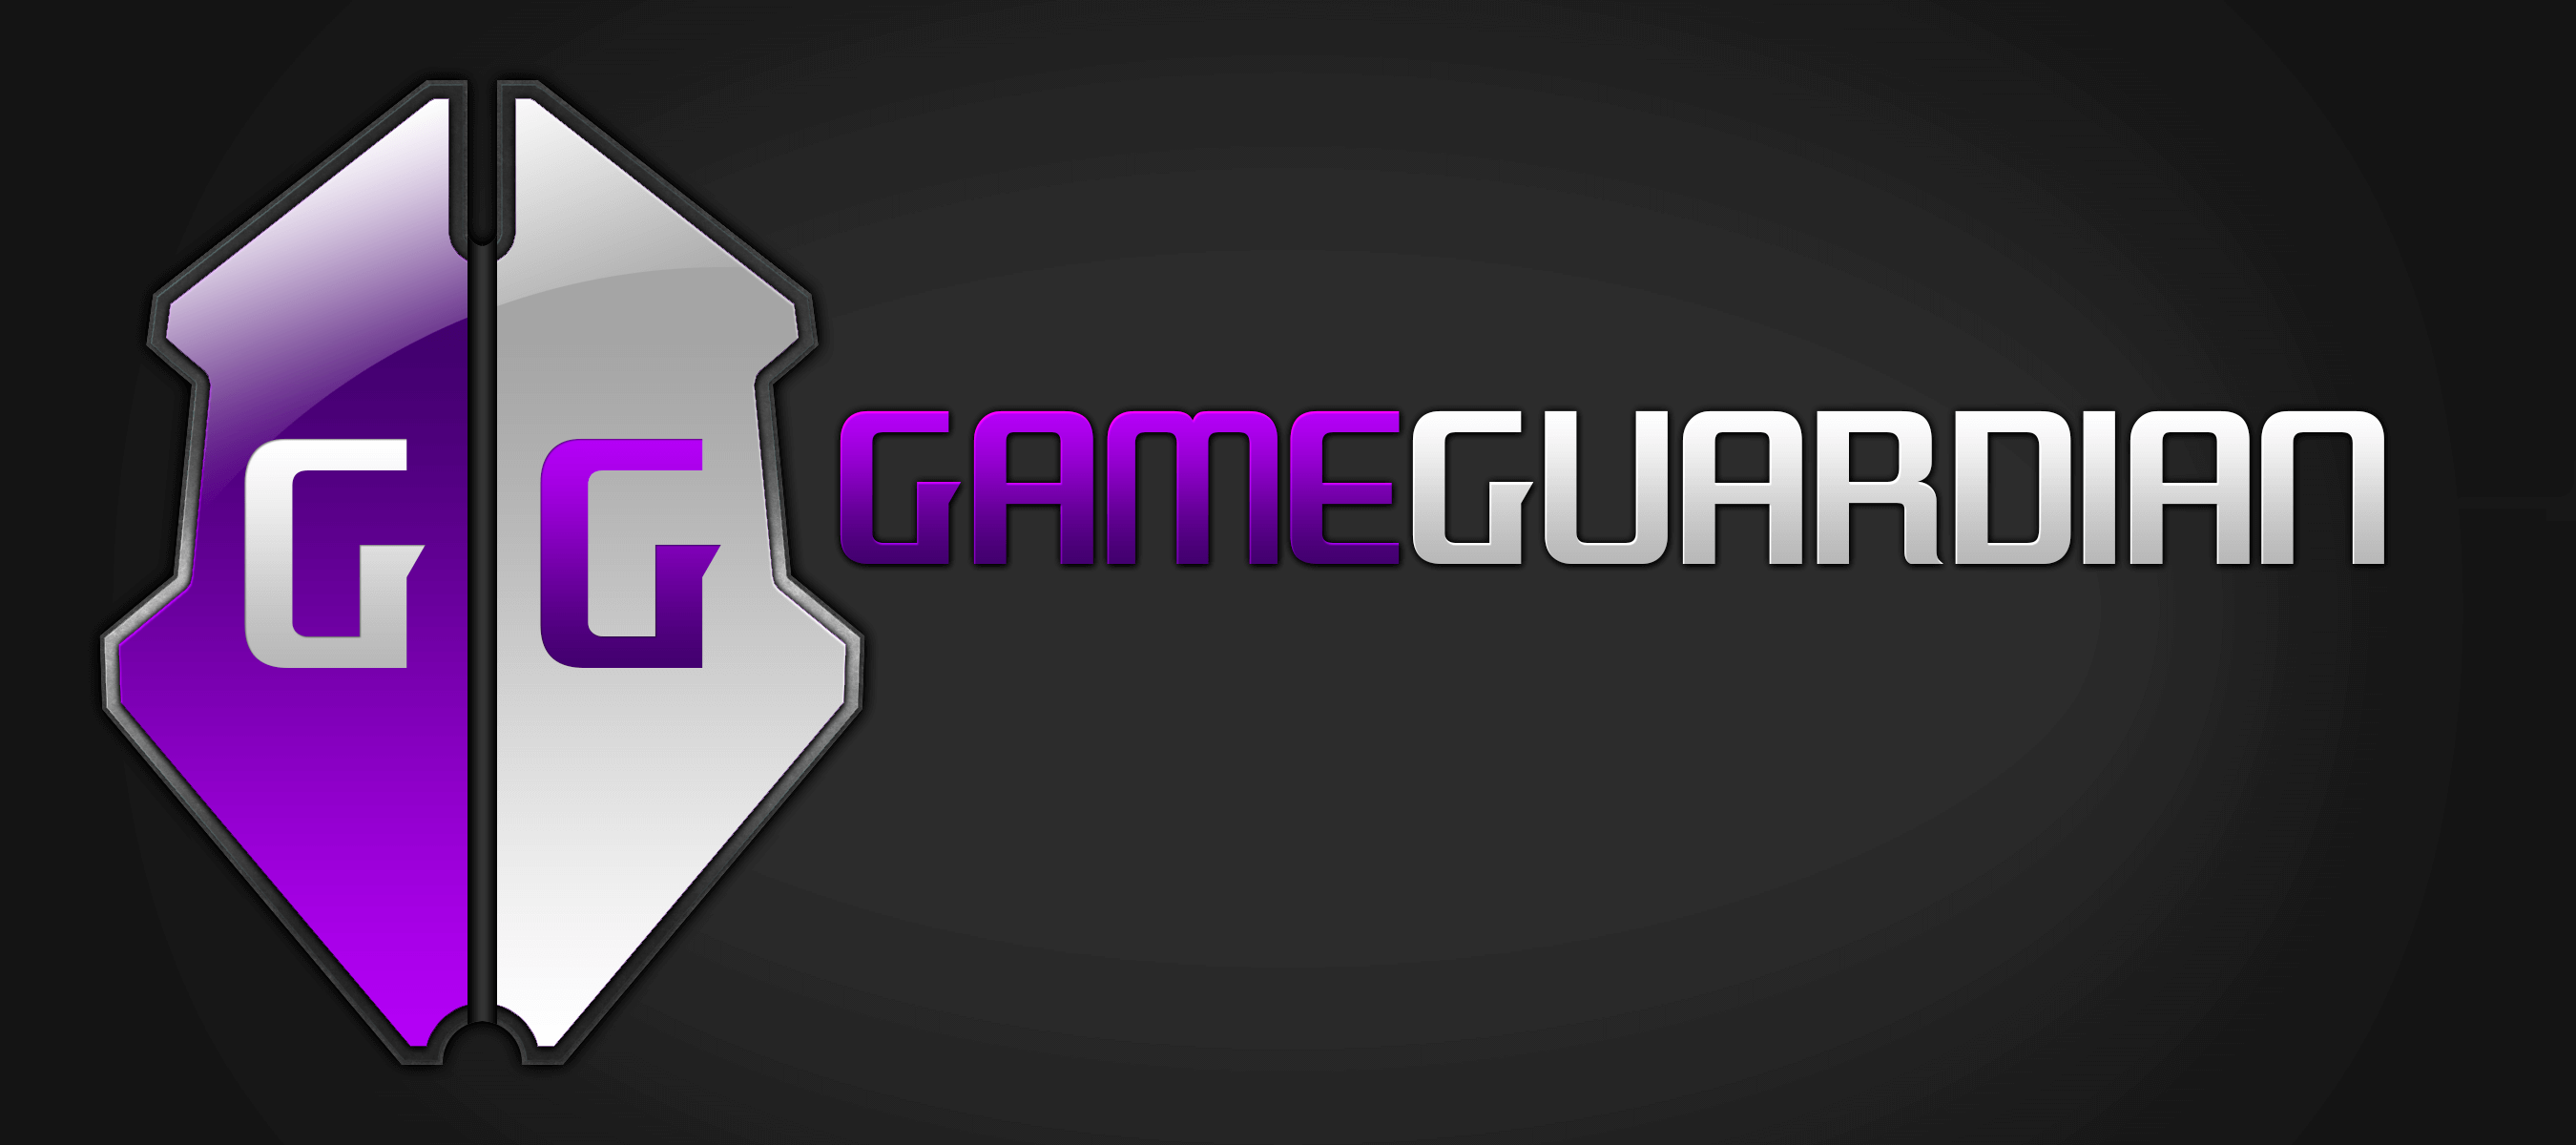 Download Game Guardian Apk